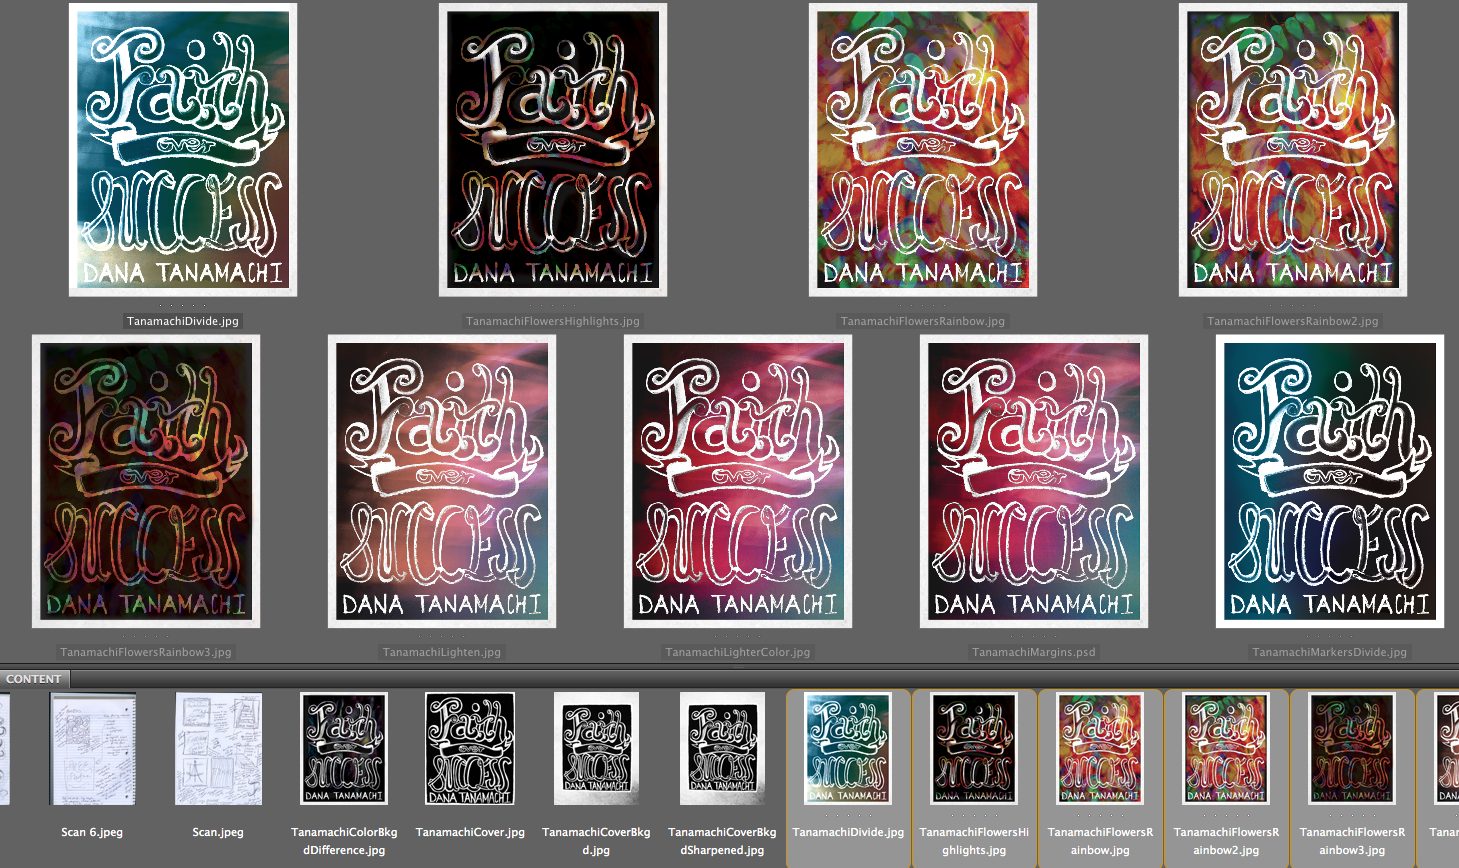 """All the different versions I made for consideration. A version was """"officially a version"""" when I decided the background looked decent with the words. I immediately eliminated the cool temperature ones after seeing all the versions together because it doesn't create the right mood. I like the ones that were more colorful or the effects added meaning to the cover."""